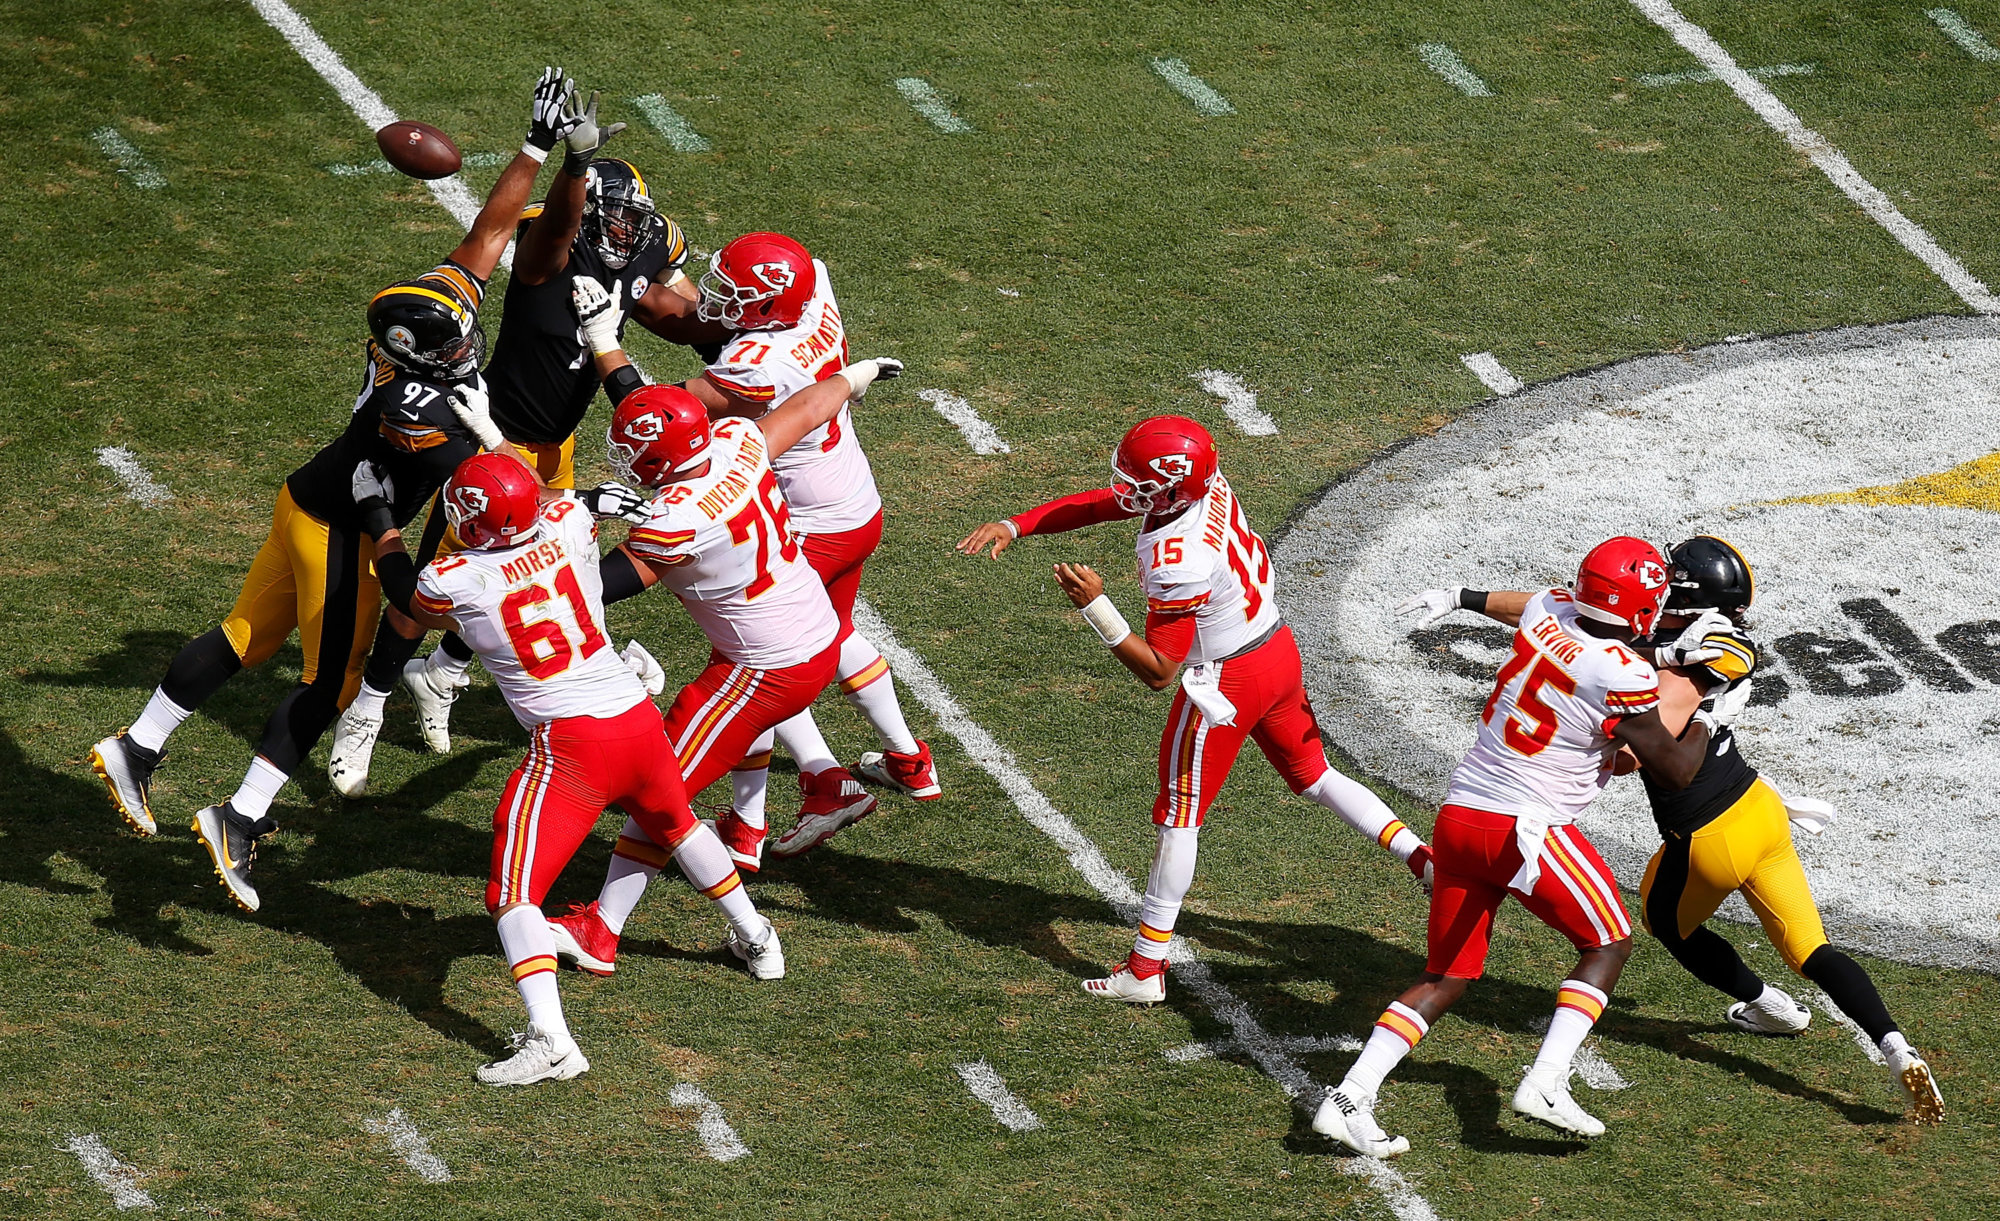 PITTSBURGH, PA - SEPTEMBER 16: Patrick Mahomes #15 of the Kansas City Chiefs passes in the second half during the game against the Pittsburgh Steelers at Heinz Field on September 16, 2018 in Pittsburgh, Pennsylvania. (Photo by Justin K. Aller/Getty Images)